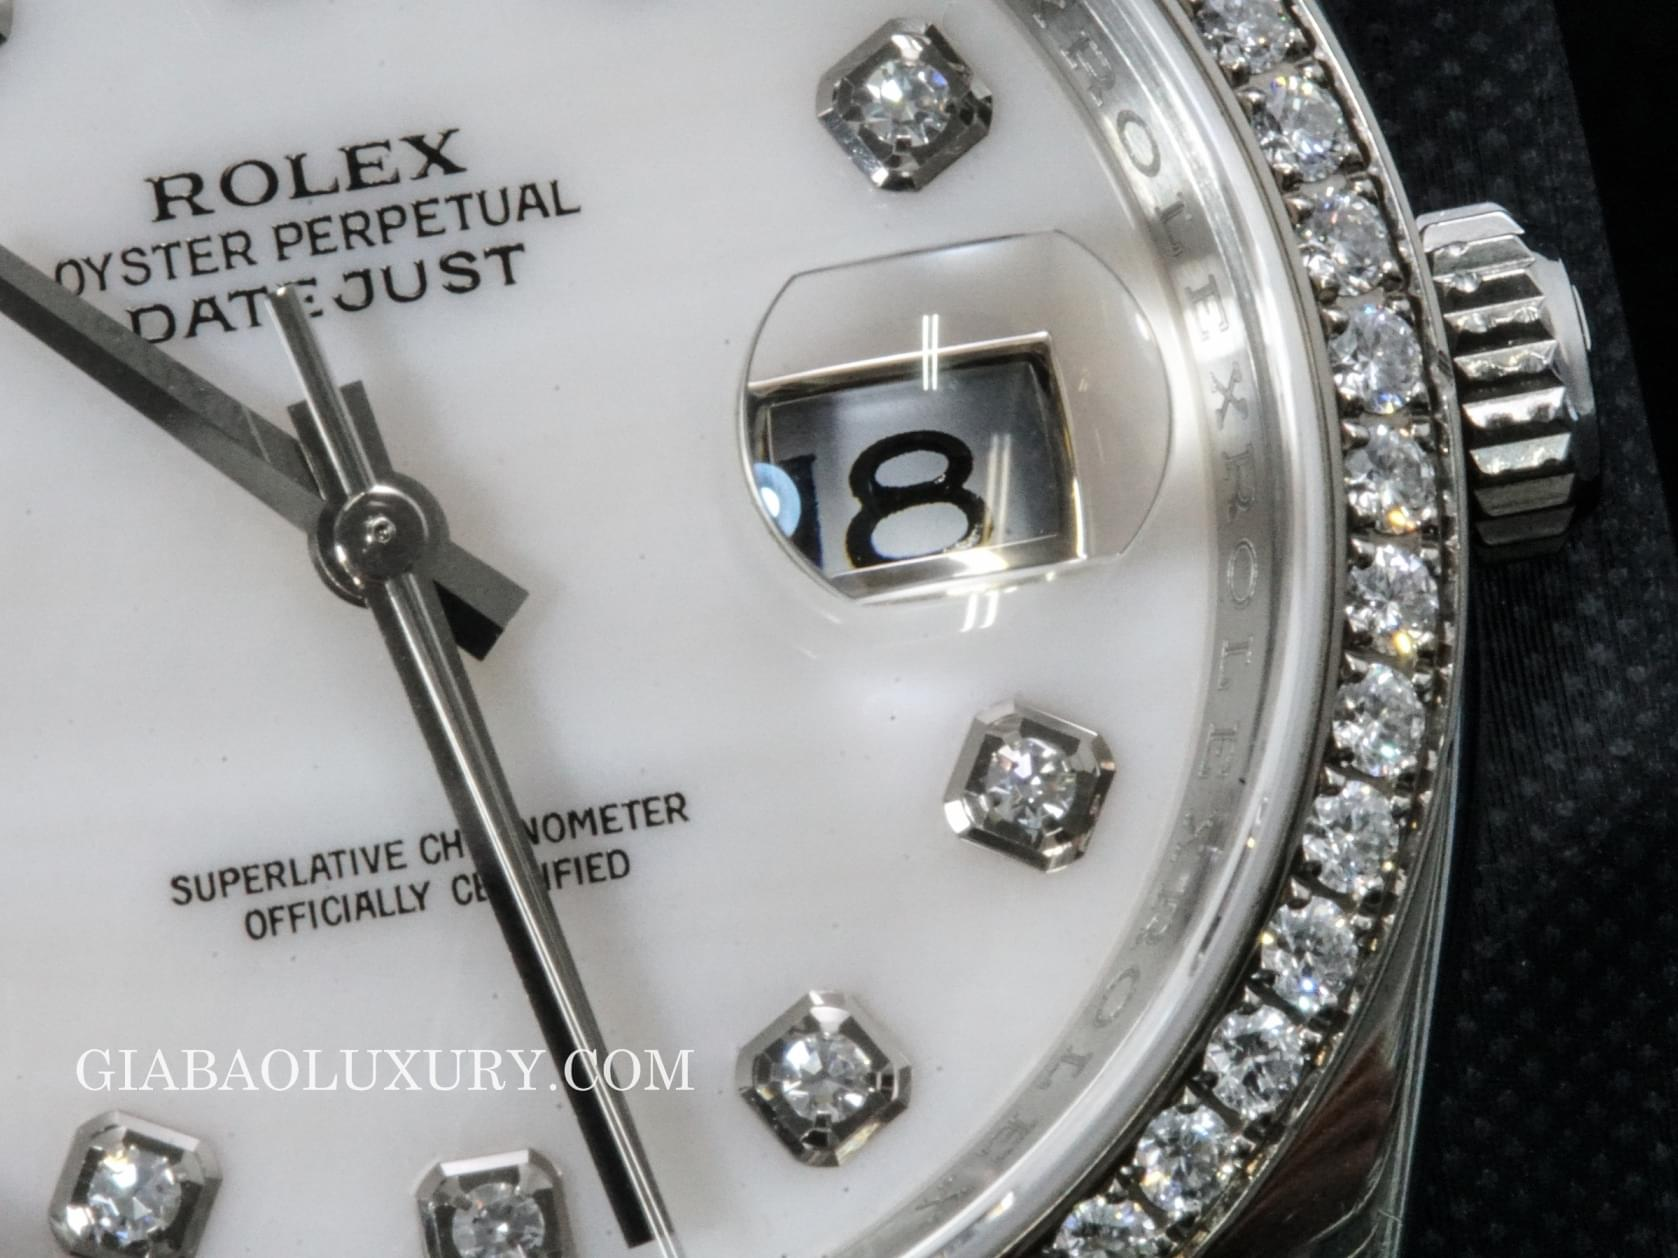 đồng hồ rolex oyster perpetual datejust 116244  mother of pearl